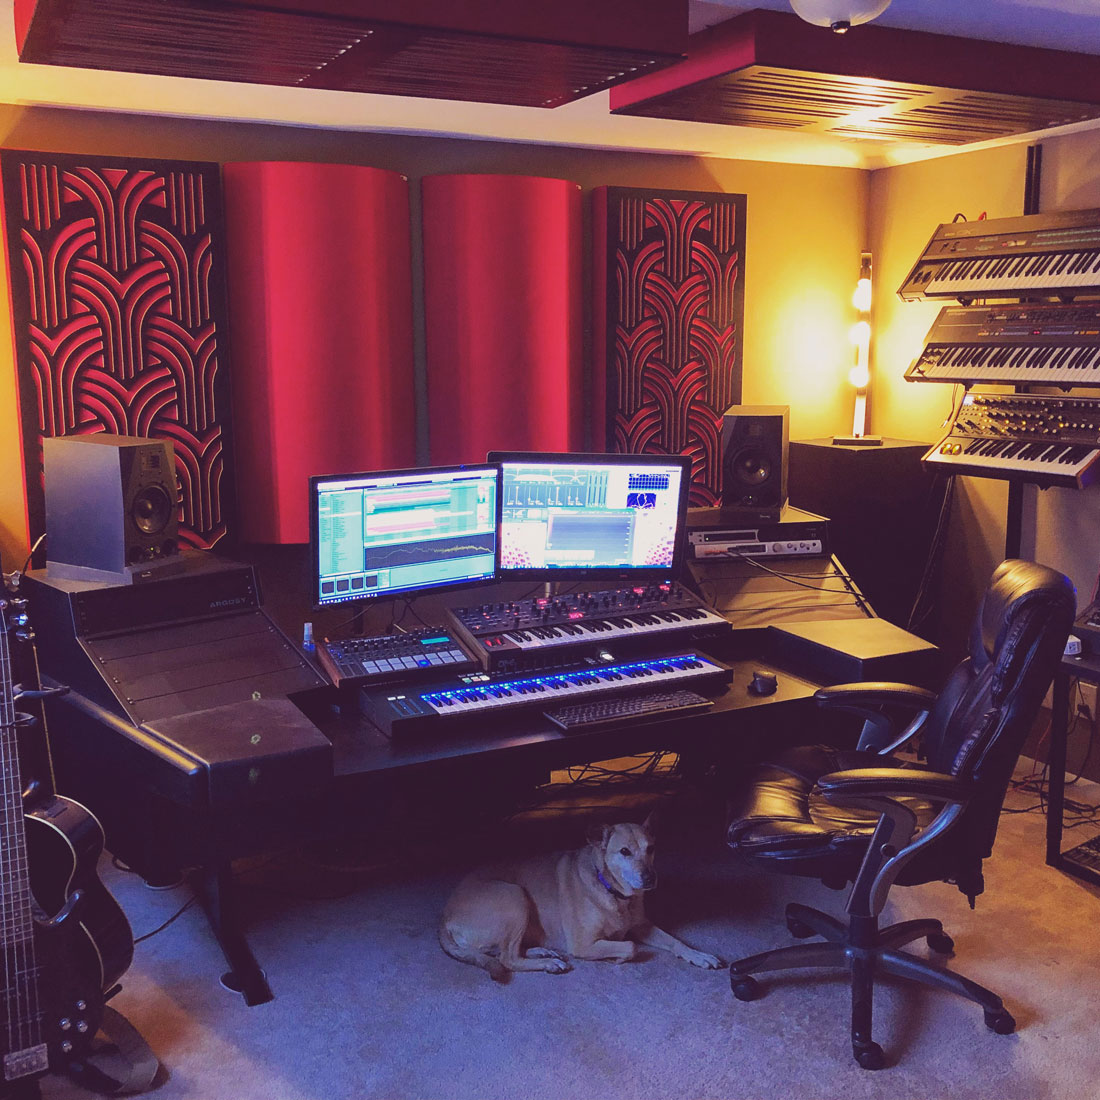 Home Studio with GIK Acoustics Absorbers and Diffusers and Impression Series